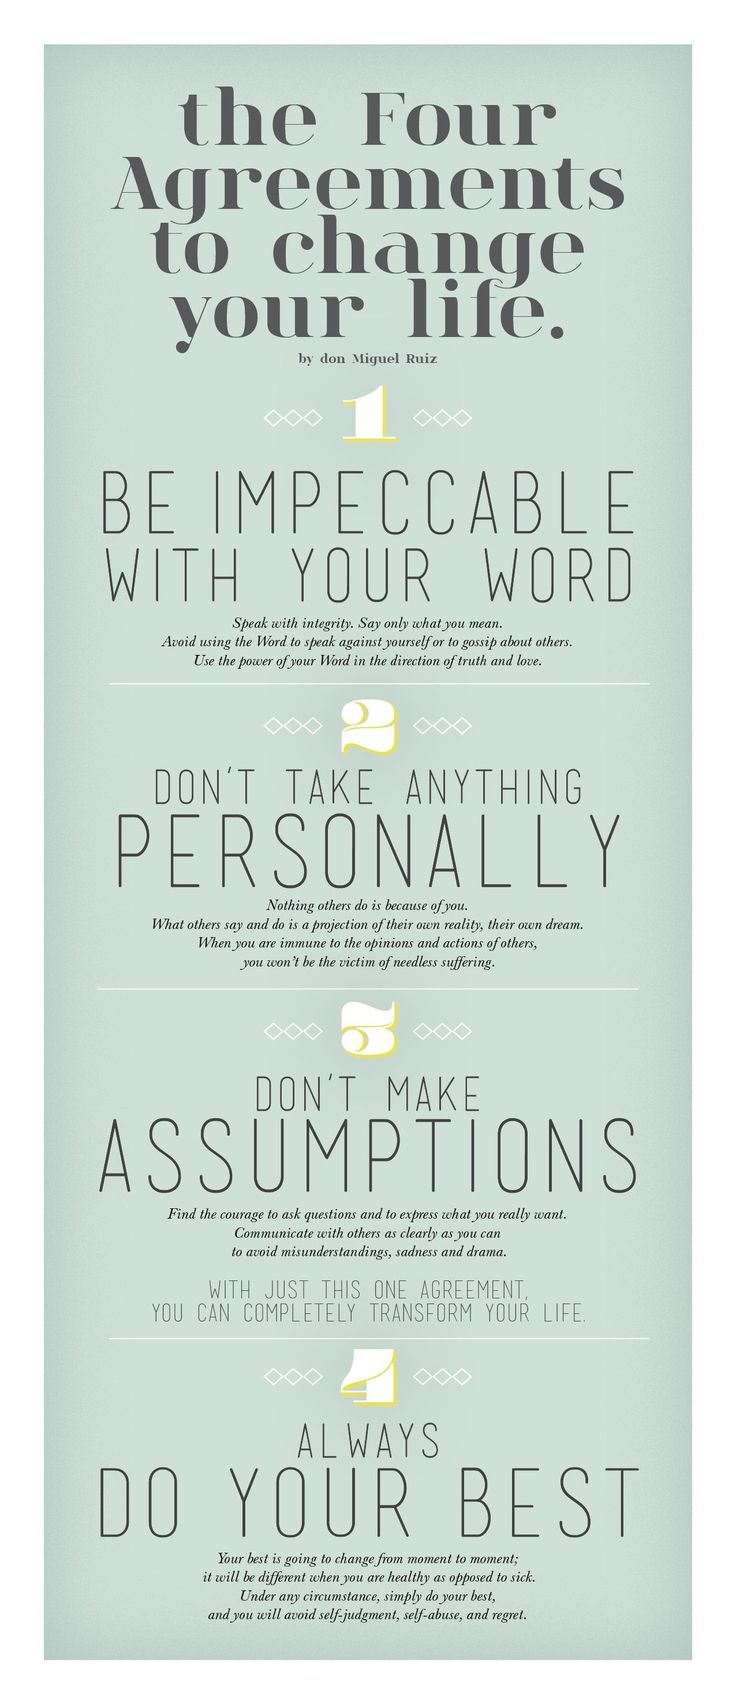 .The four agreements to change your life.